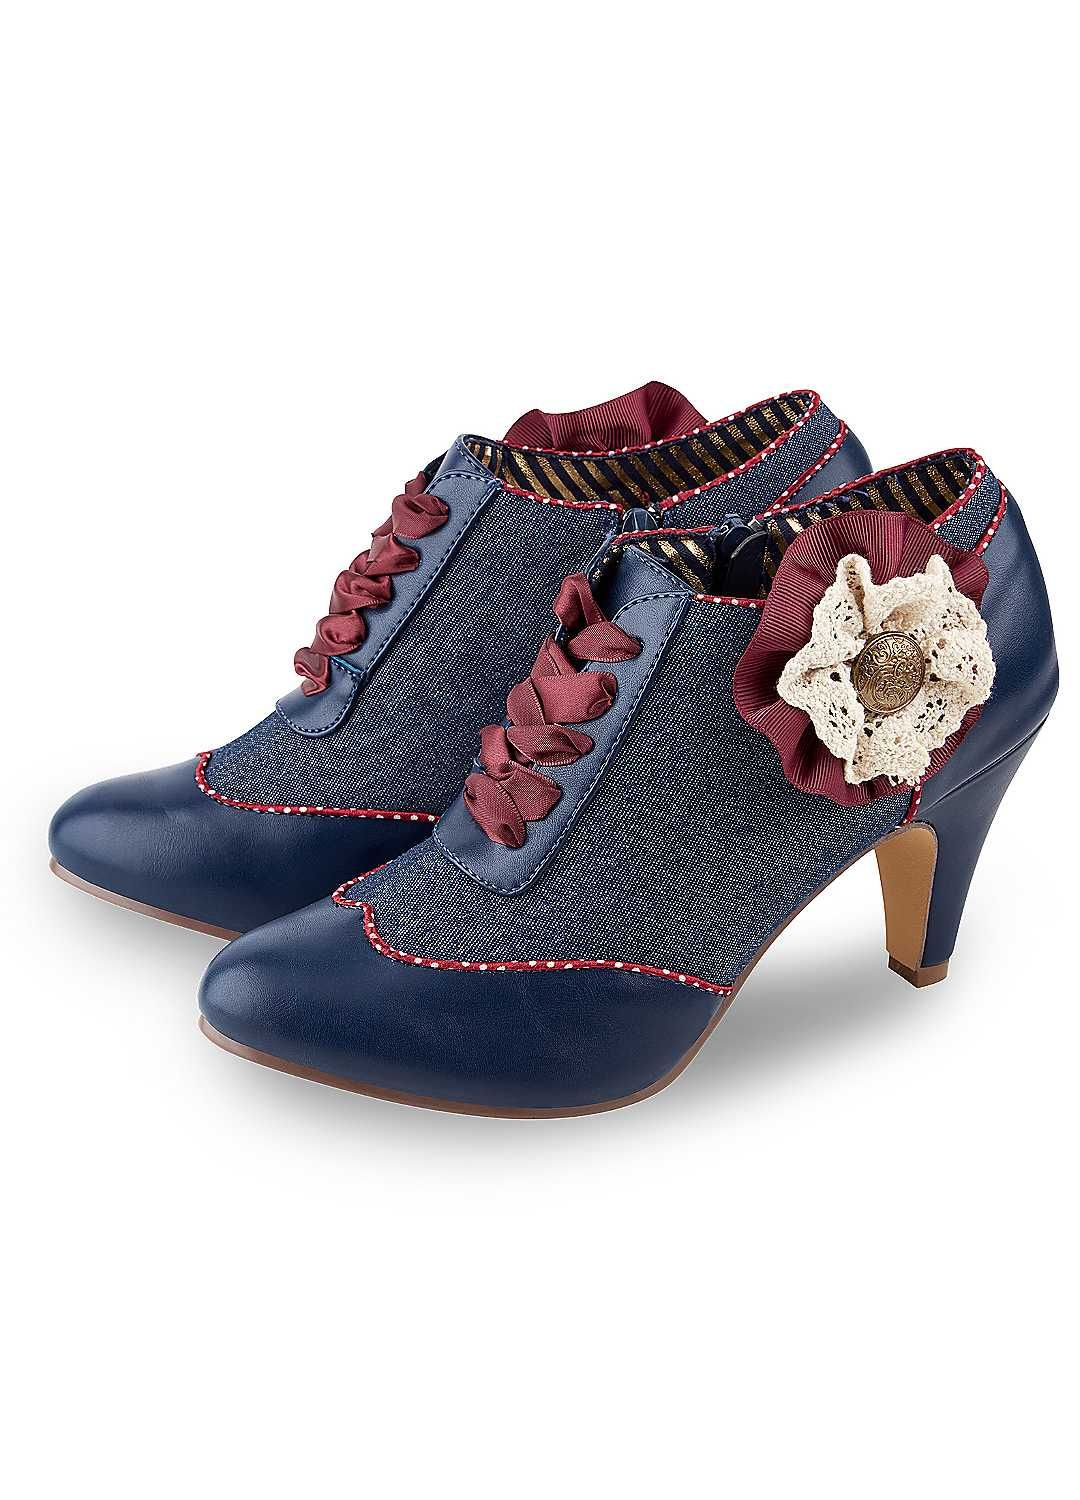 Fabulous Corsage Shoes Boots by Joe Browns | Joe browns